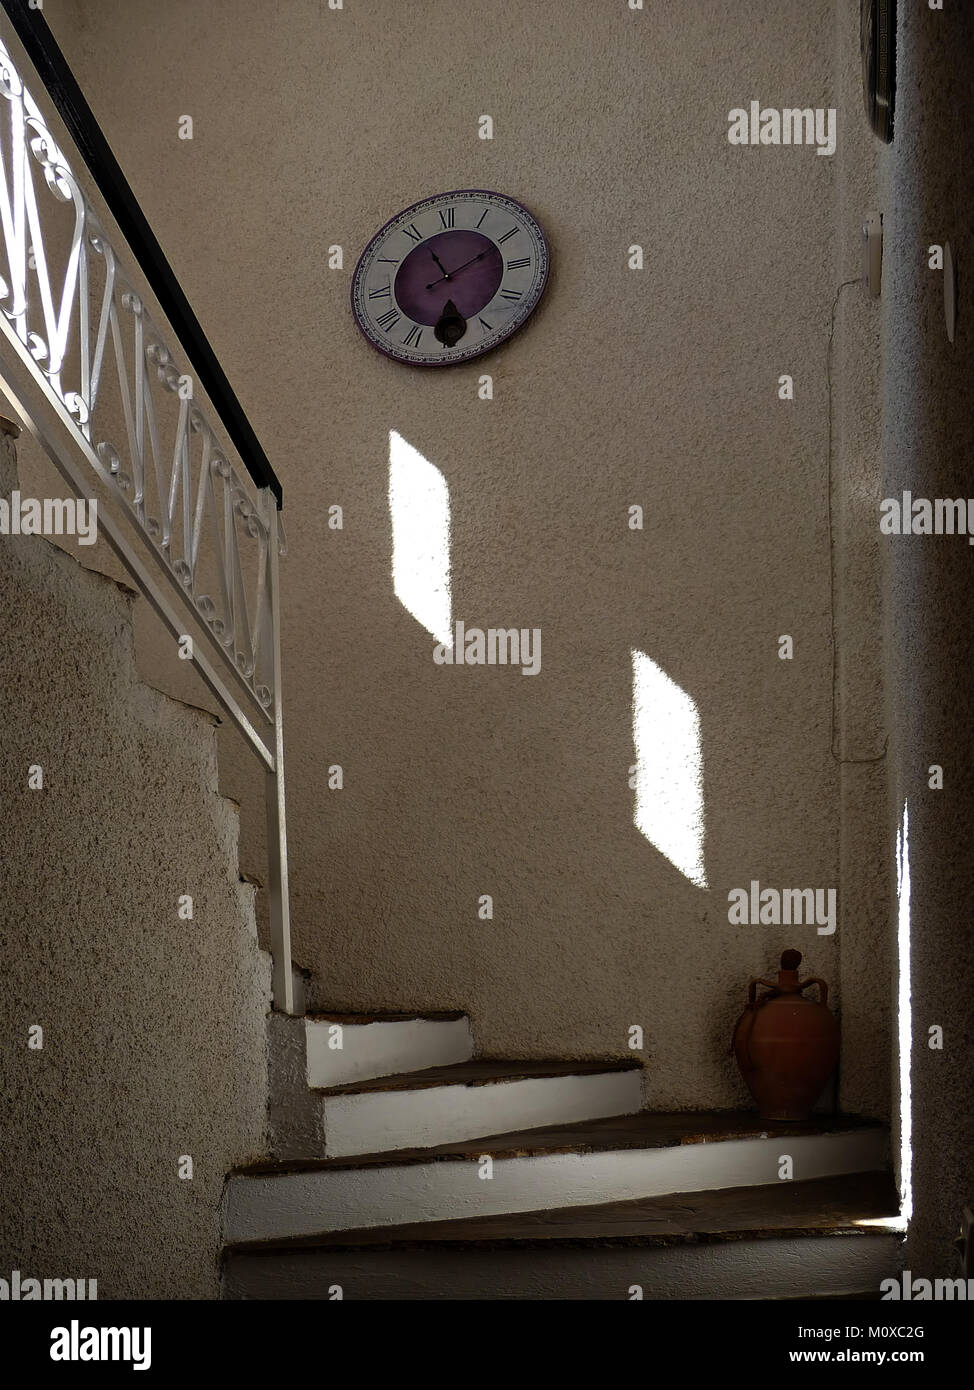 Interior Decoration White Stairs Clock On The Wall Vase In The